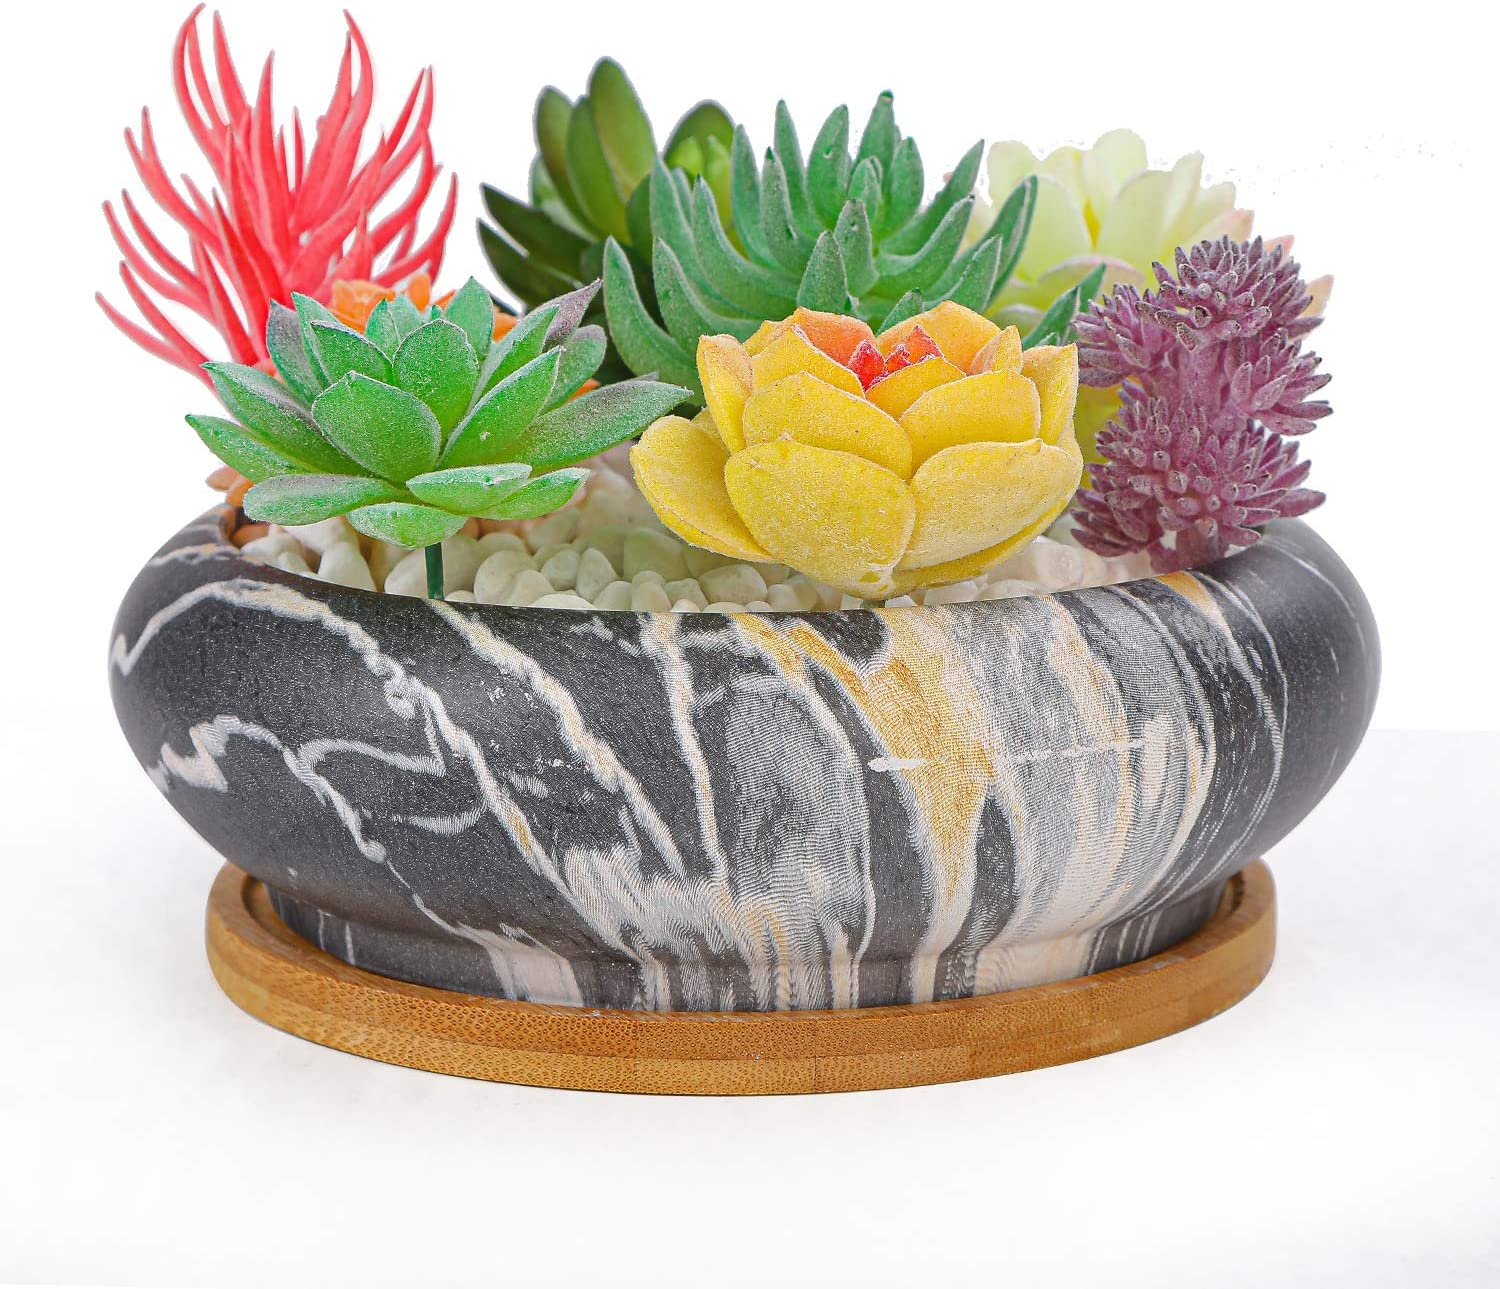 Artketty Marble Ceramic Succulent Cactus Plant Large Pot Round Popular Limited Special Price product